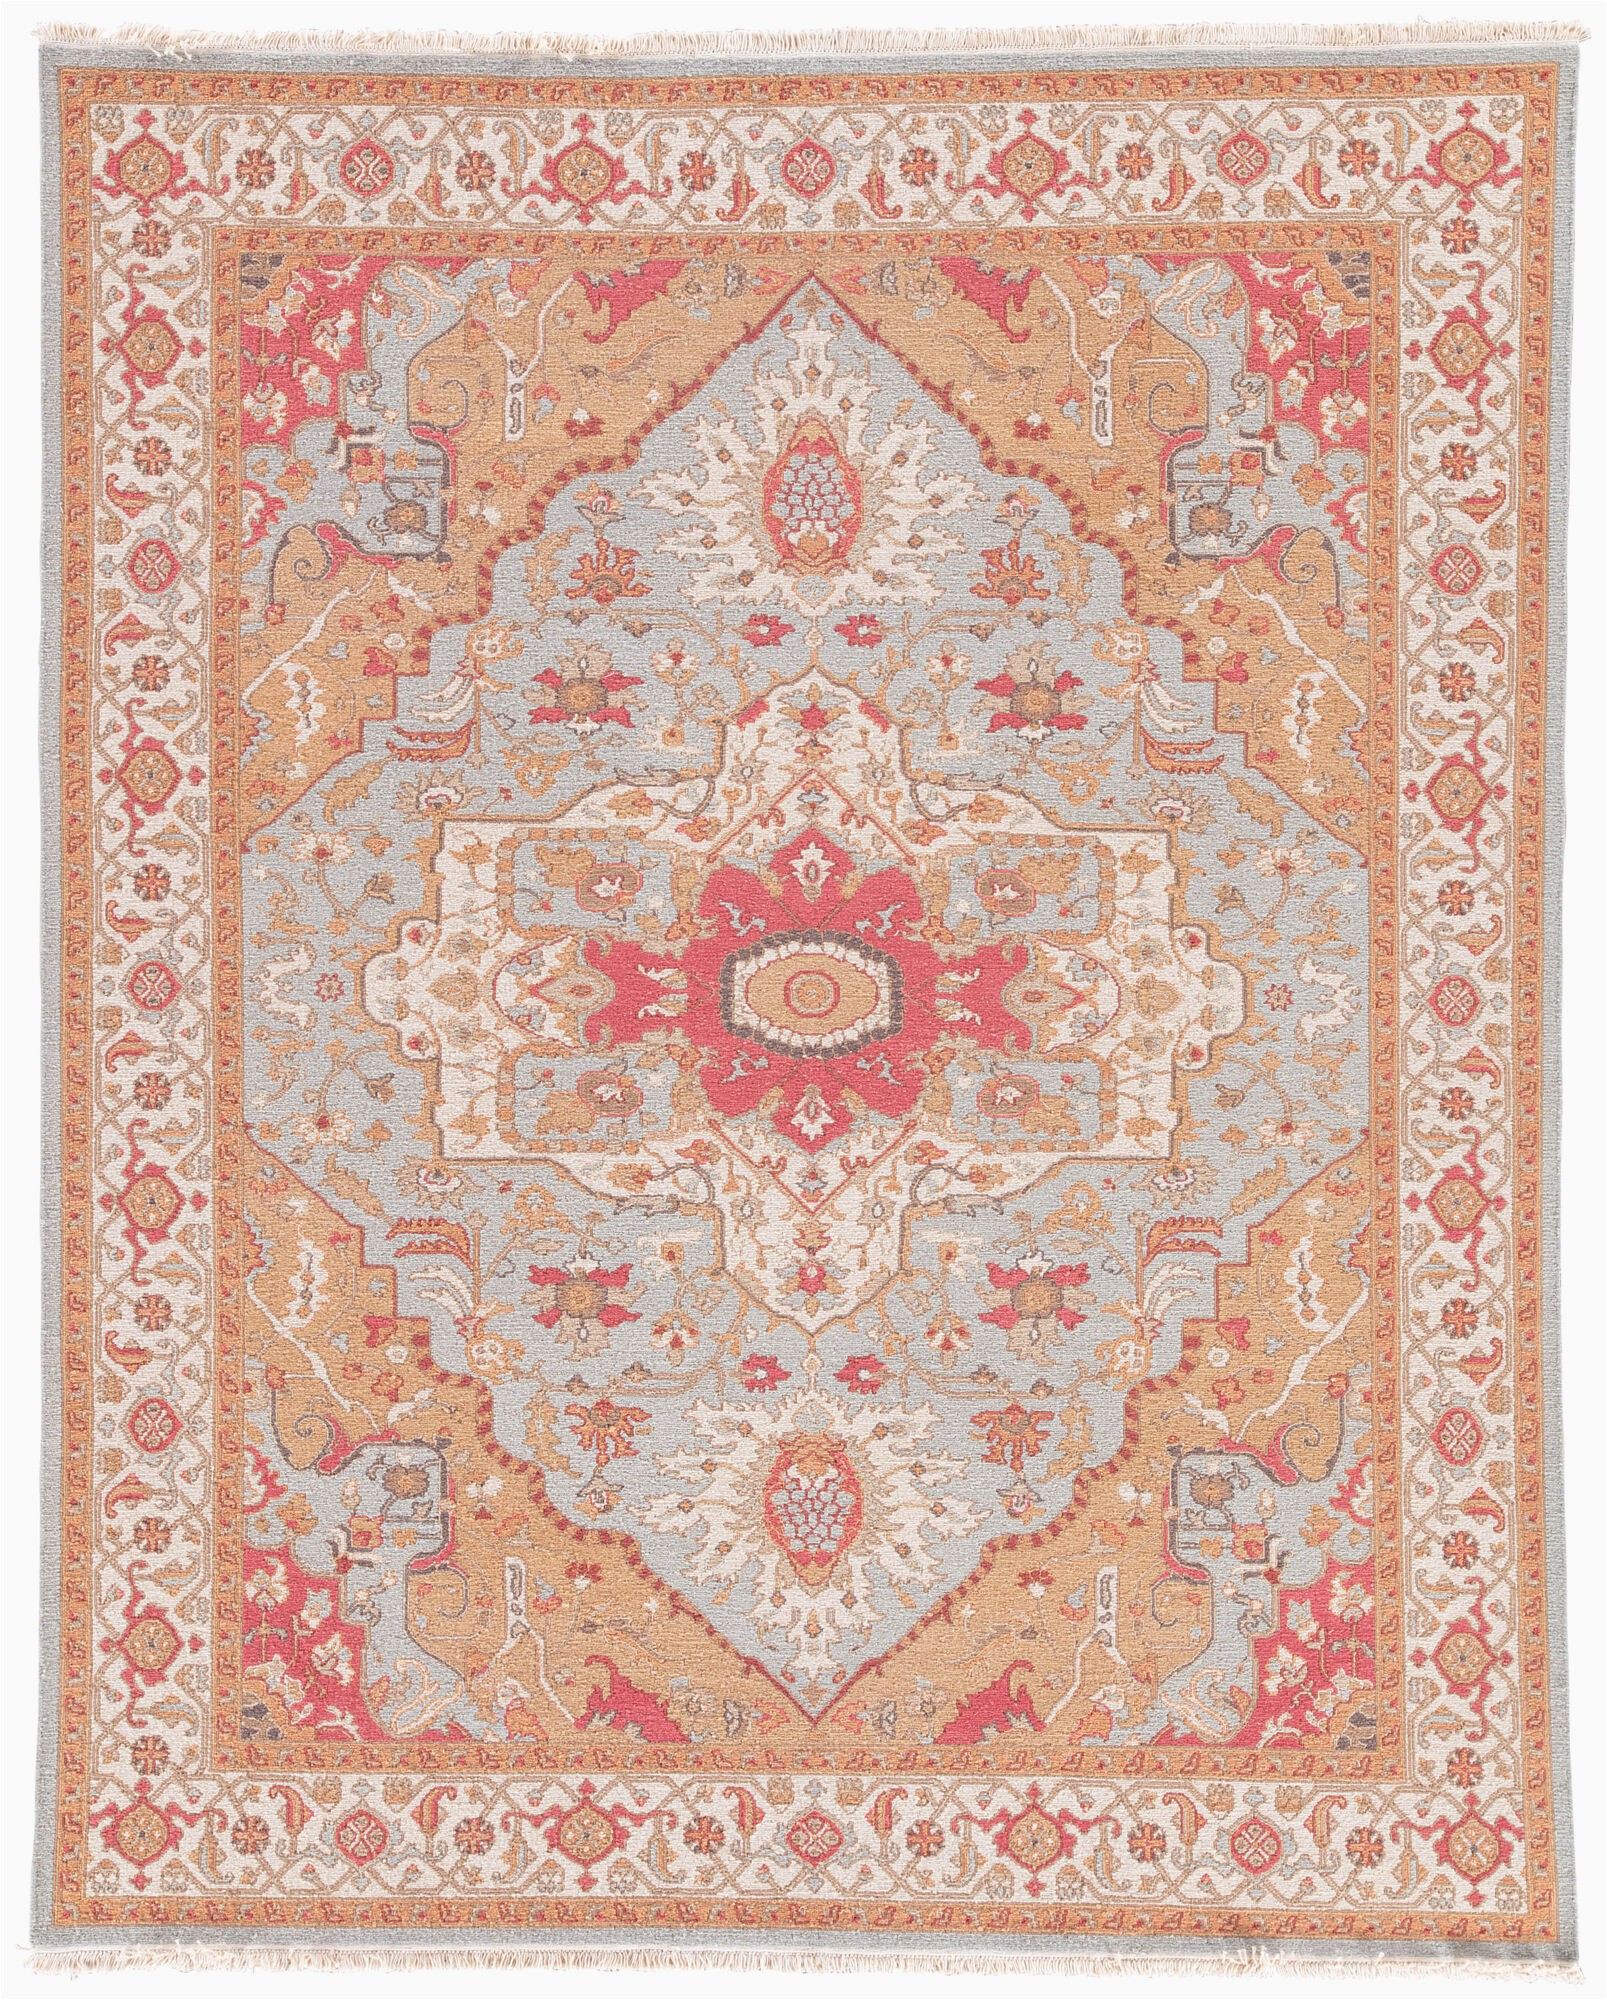 Orange and Pink area Rugs Talma Hand Knotted Medallion orange Pink area Rug 6 X9